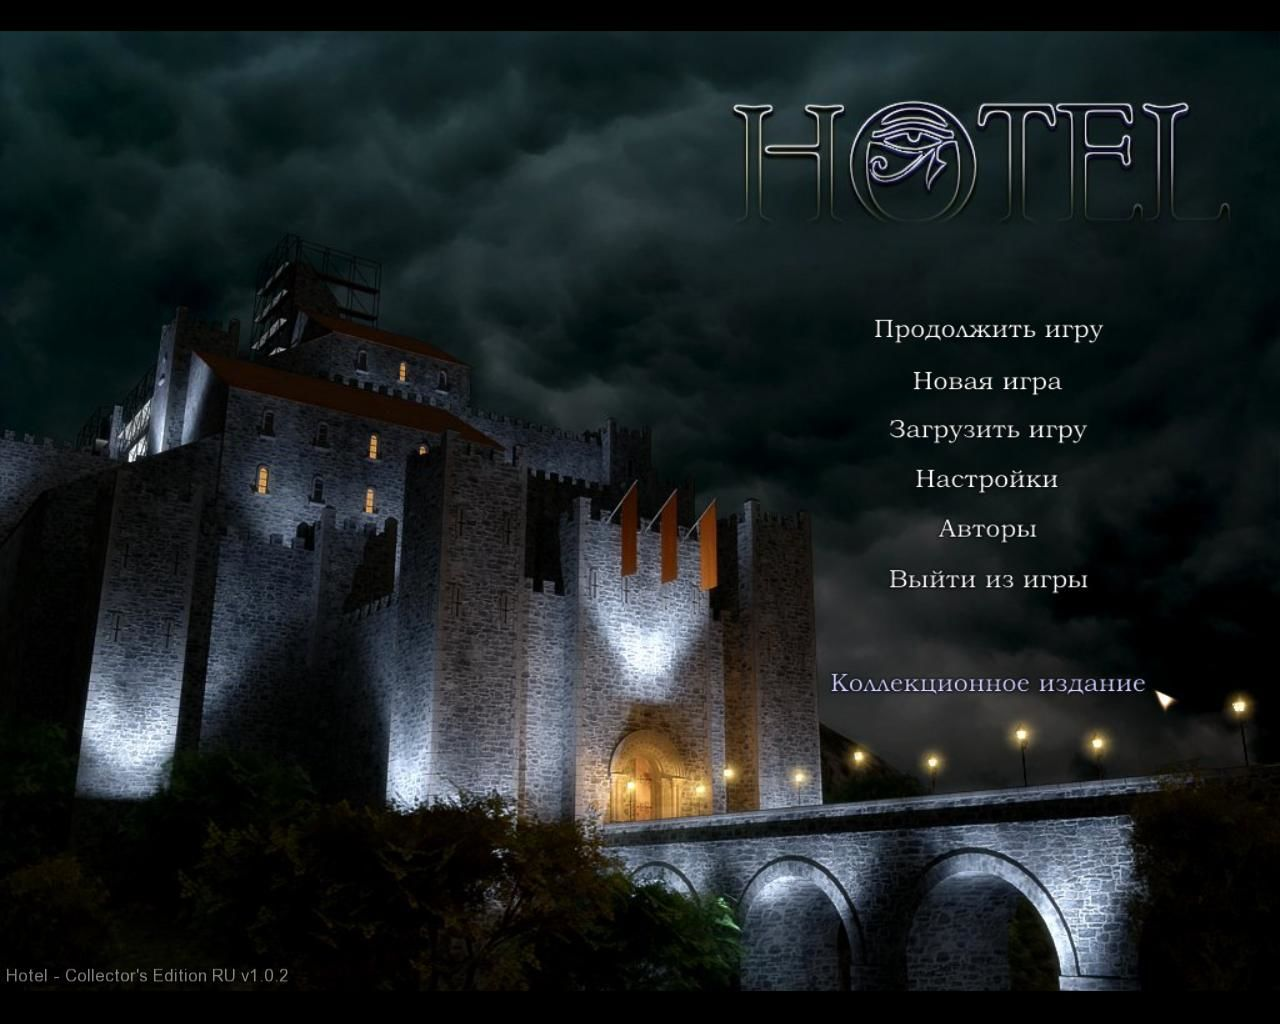 Hotel (Collector's Edition) Windows Title and Main Menu (in Russian)